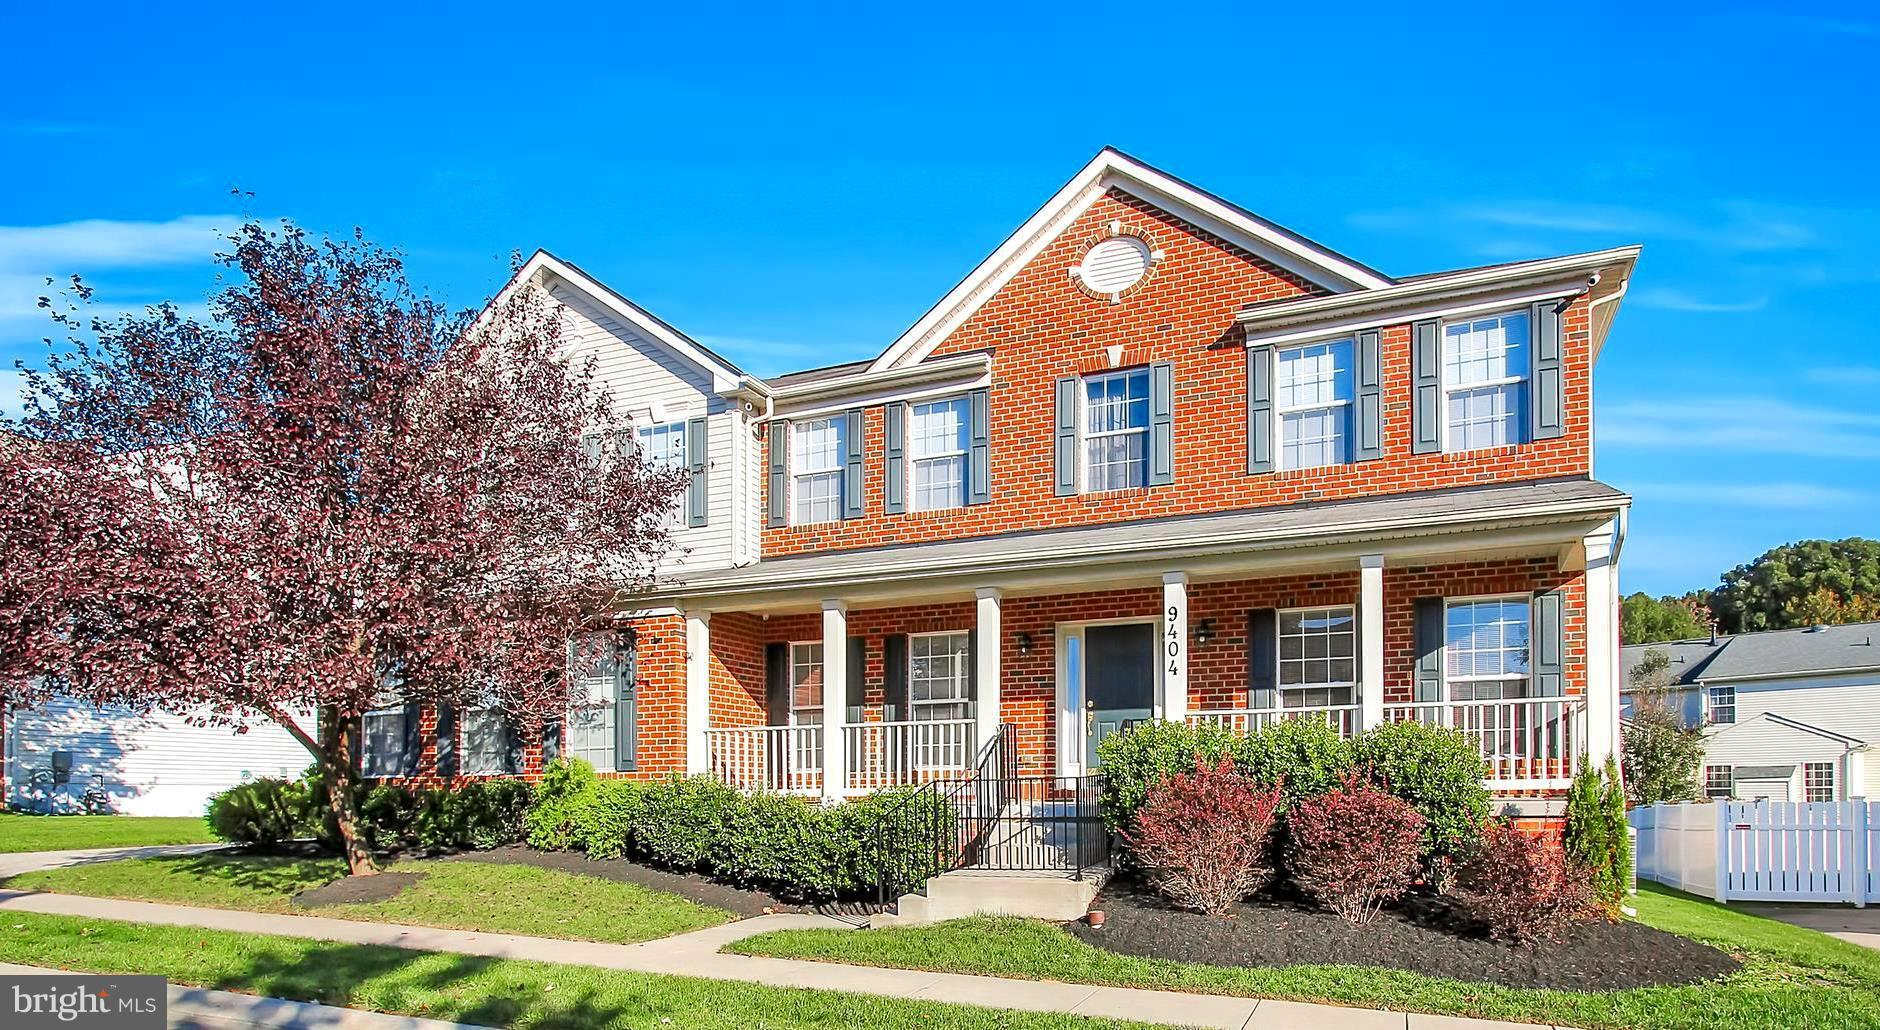 9404 GEORGIA BELLE DRIVE, PERRY HALL, MD 21128